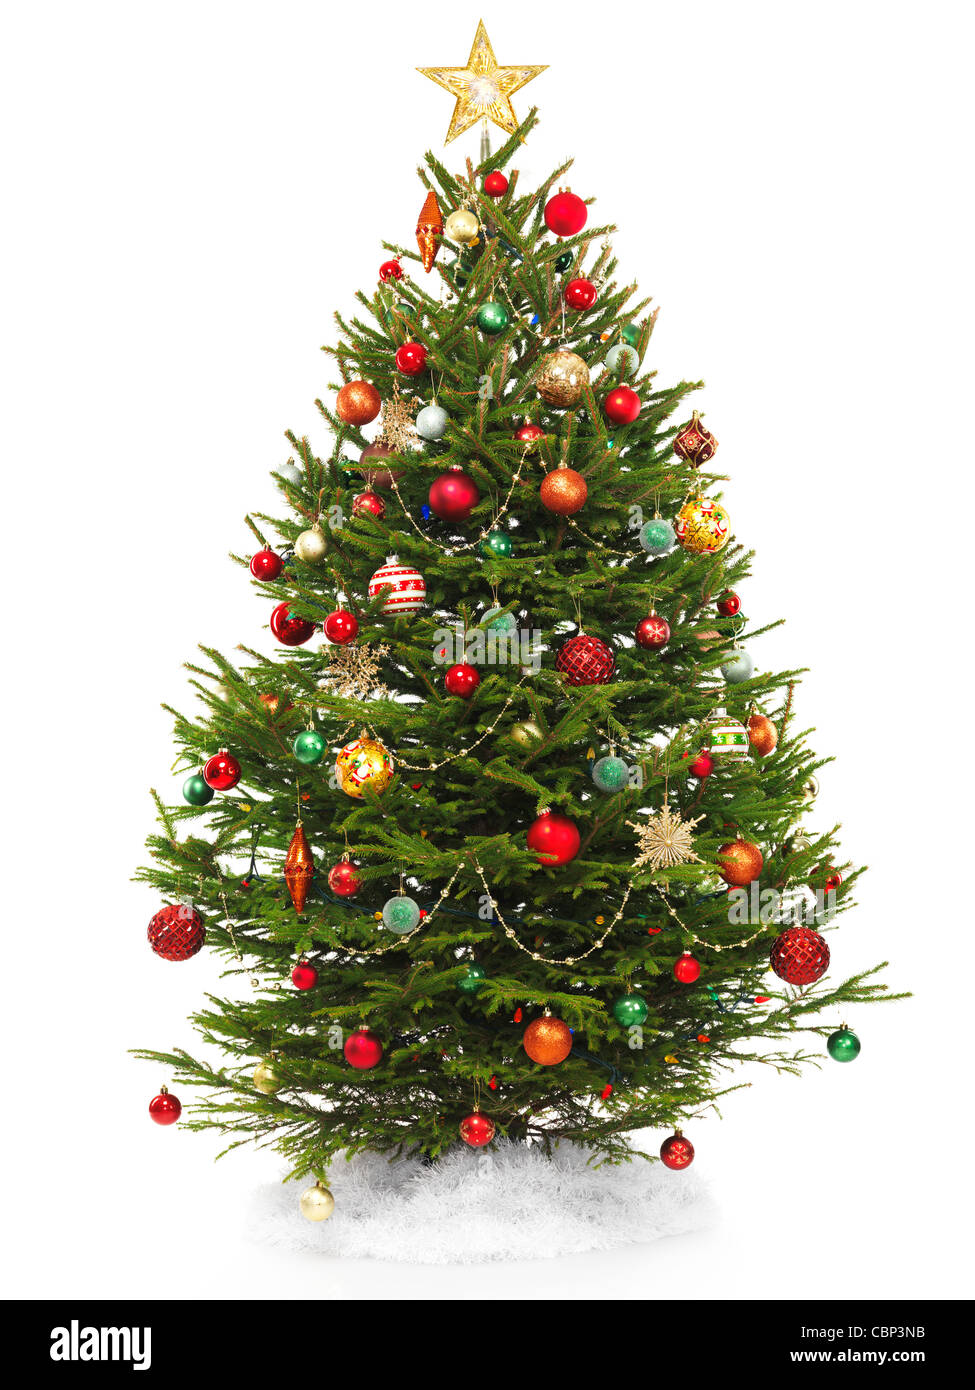 beautiful decorated christmas tree with a star topper isolated on white background stock image - Beautifully Decorated Christmas Tree Images